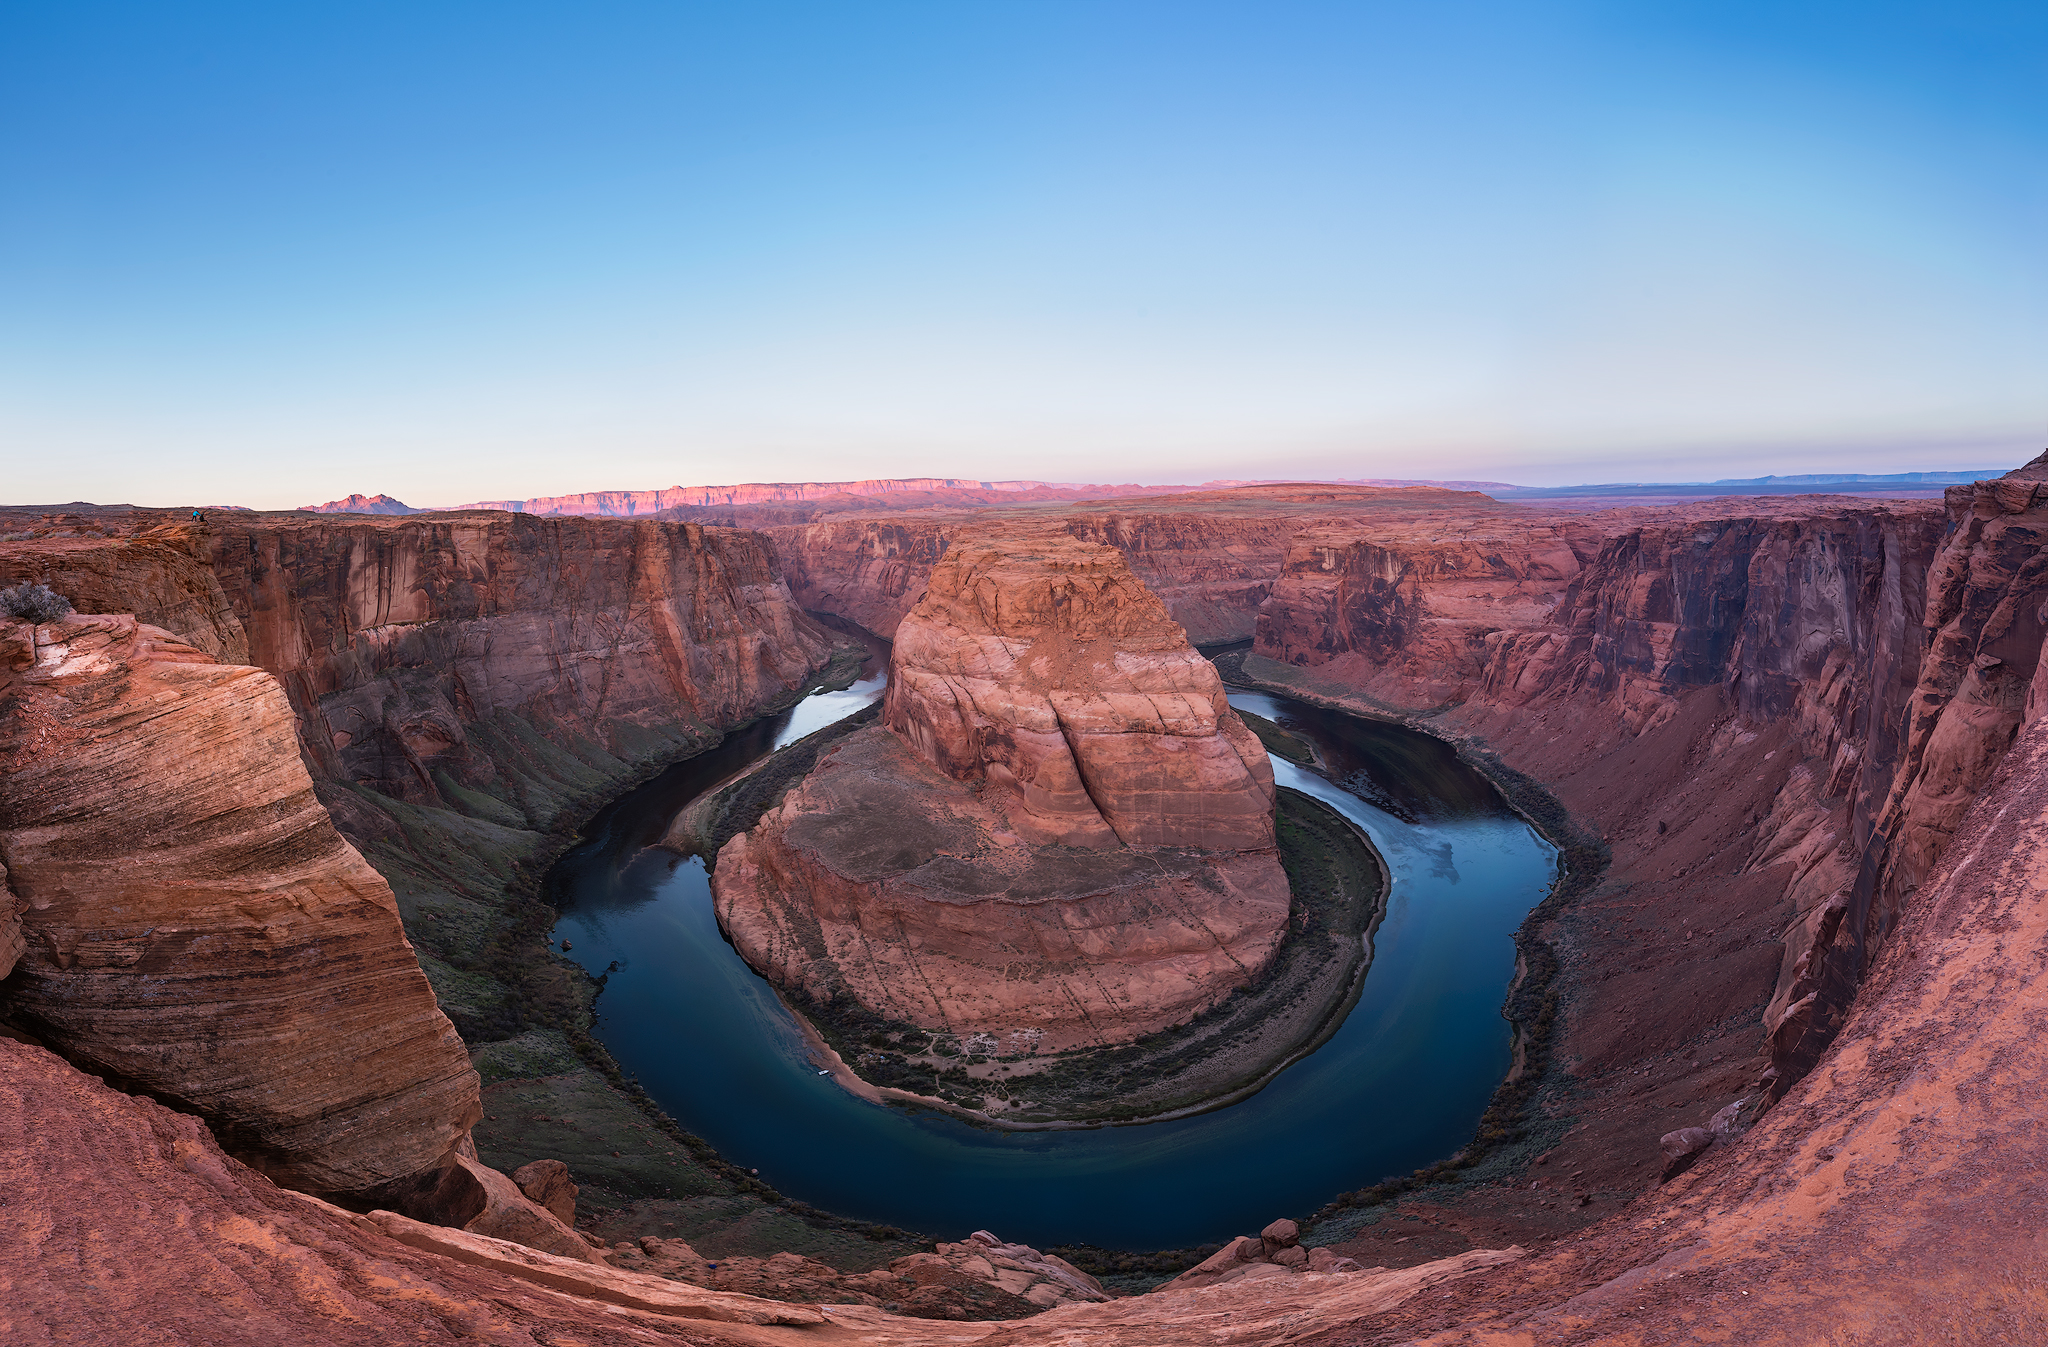 Early morning shot of Horseshoe Bend, Arizona.